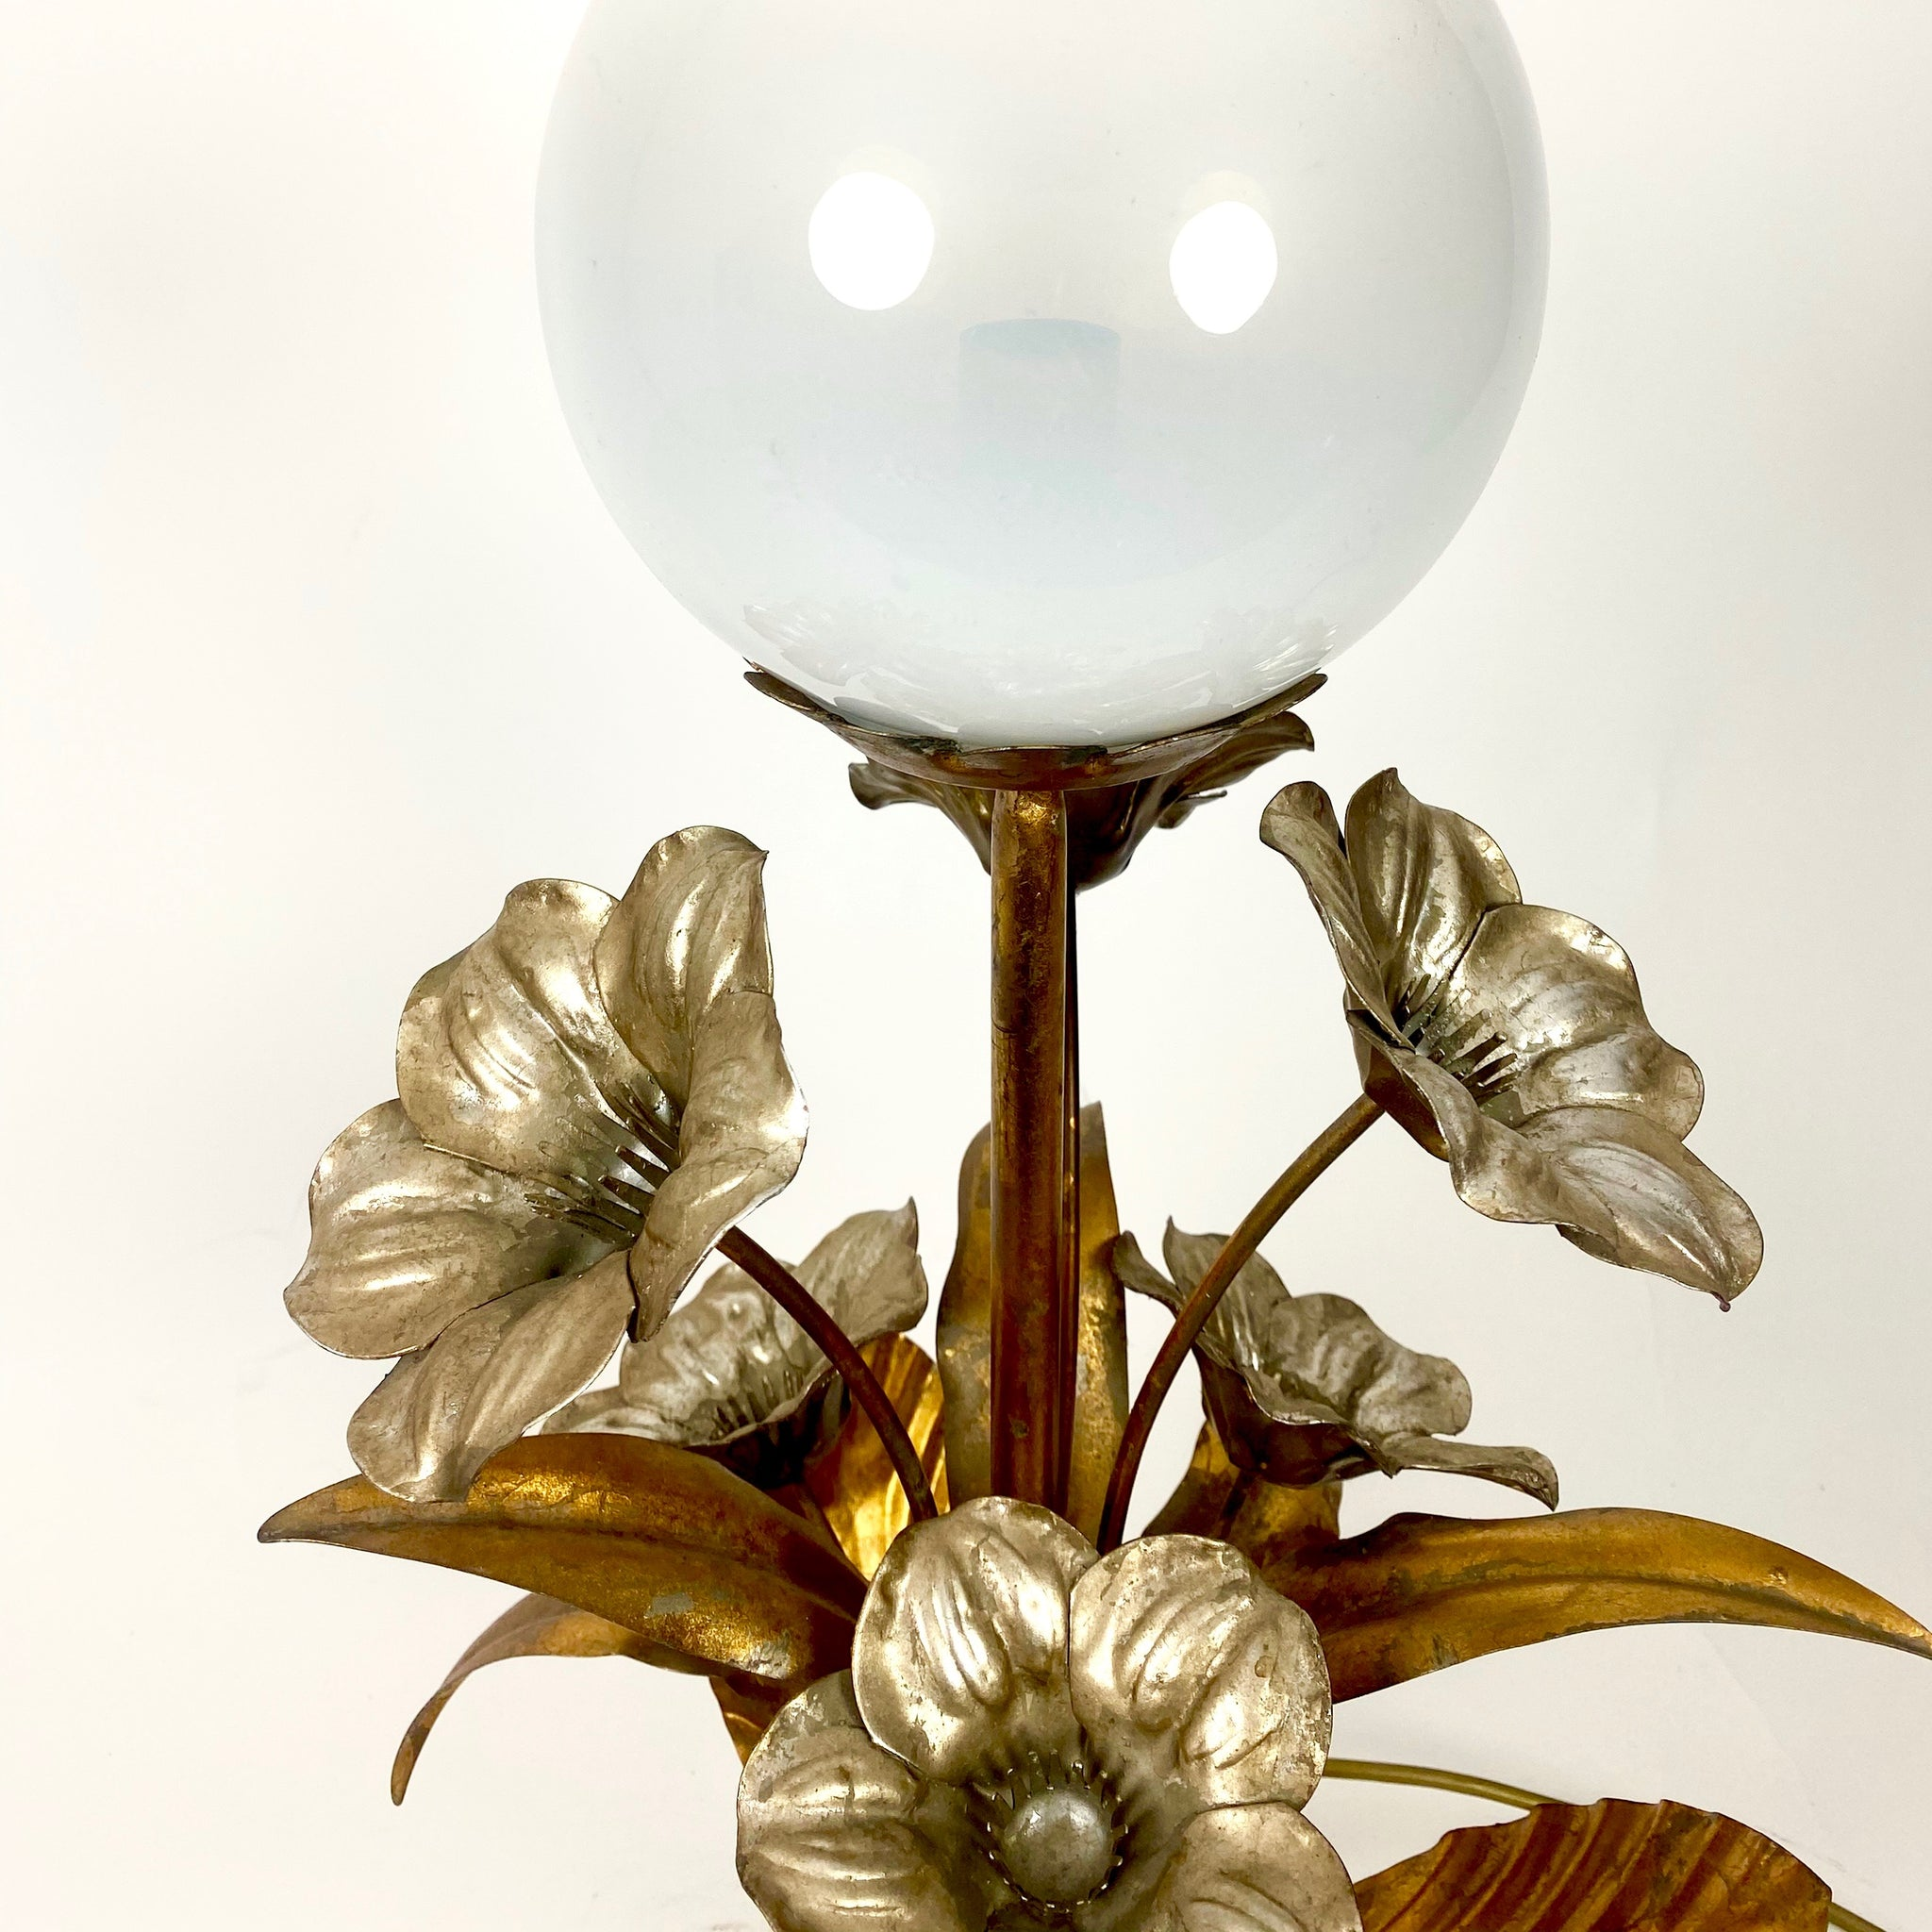 Gold and silver leaf Hans Koghl table lamp.